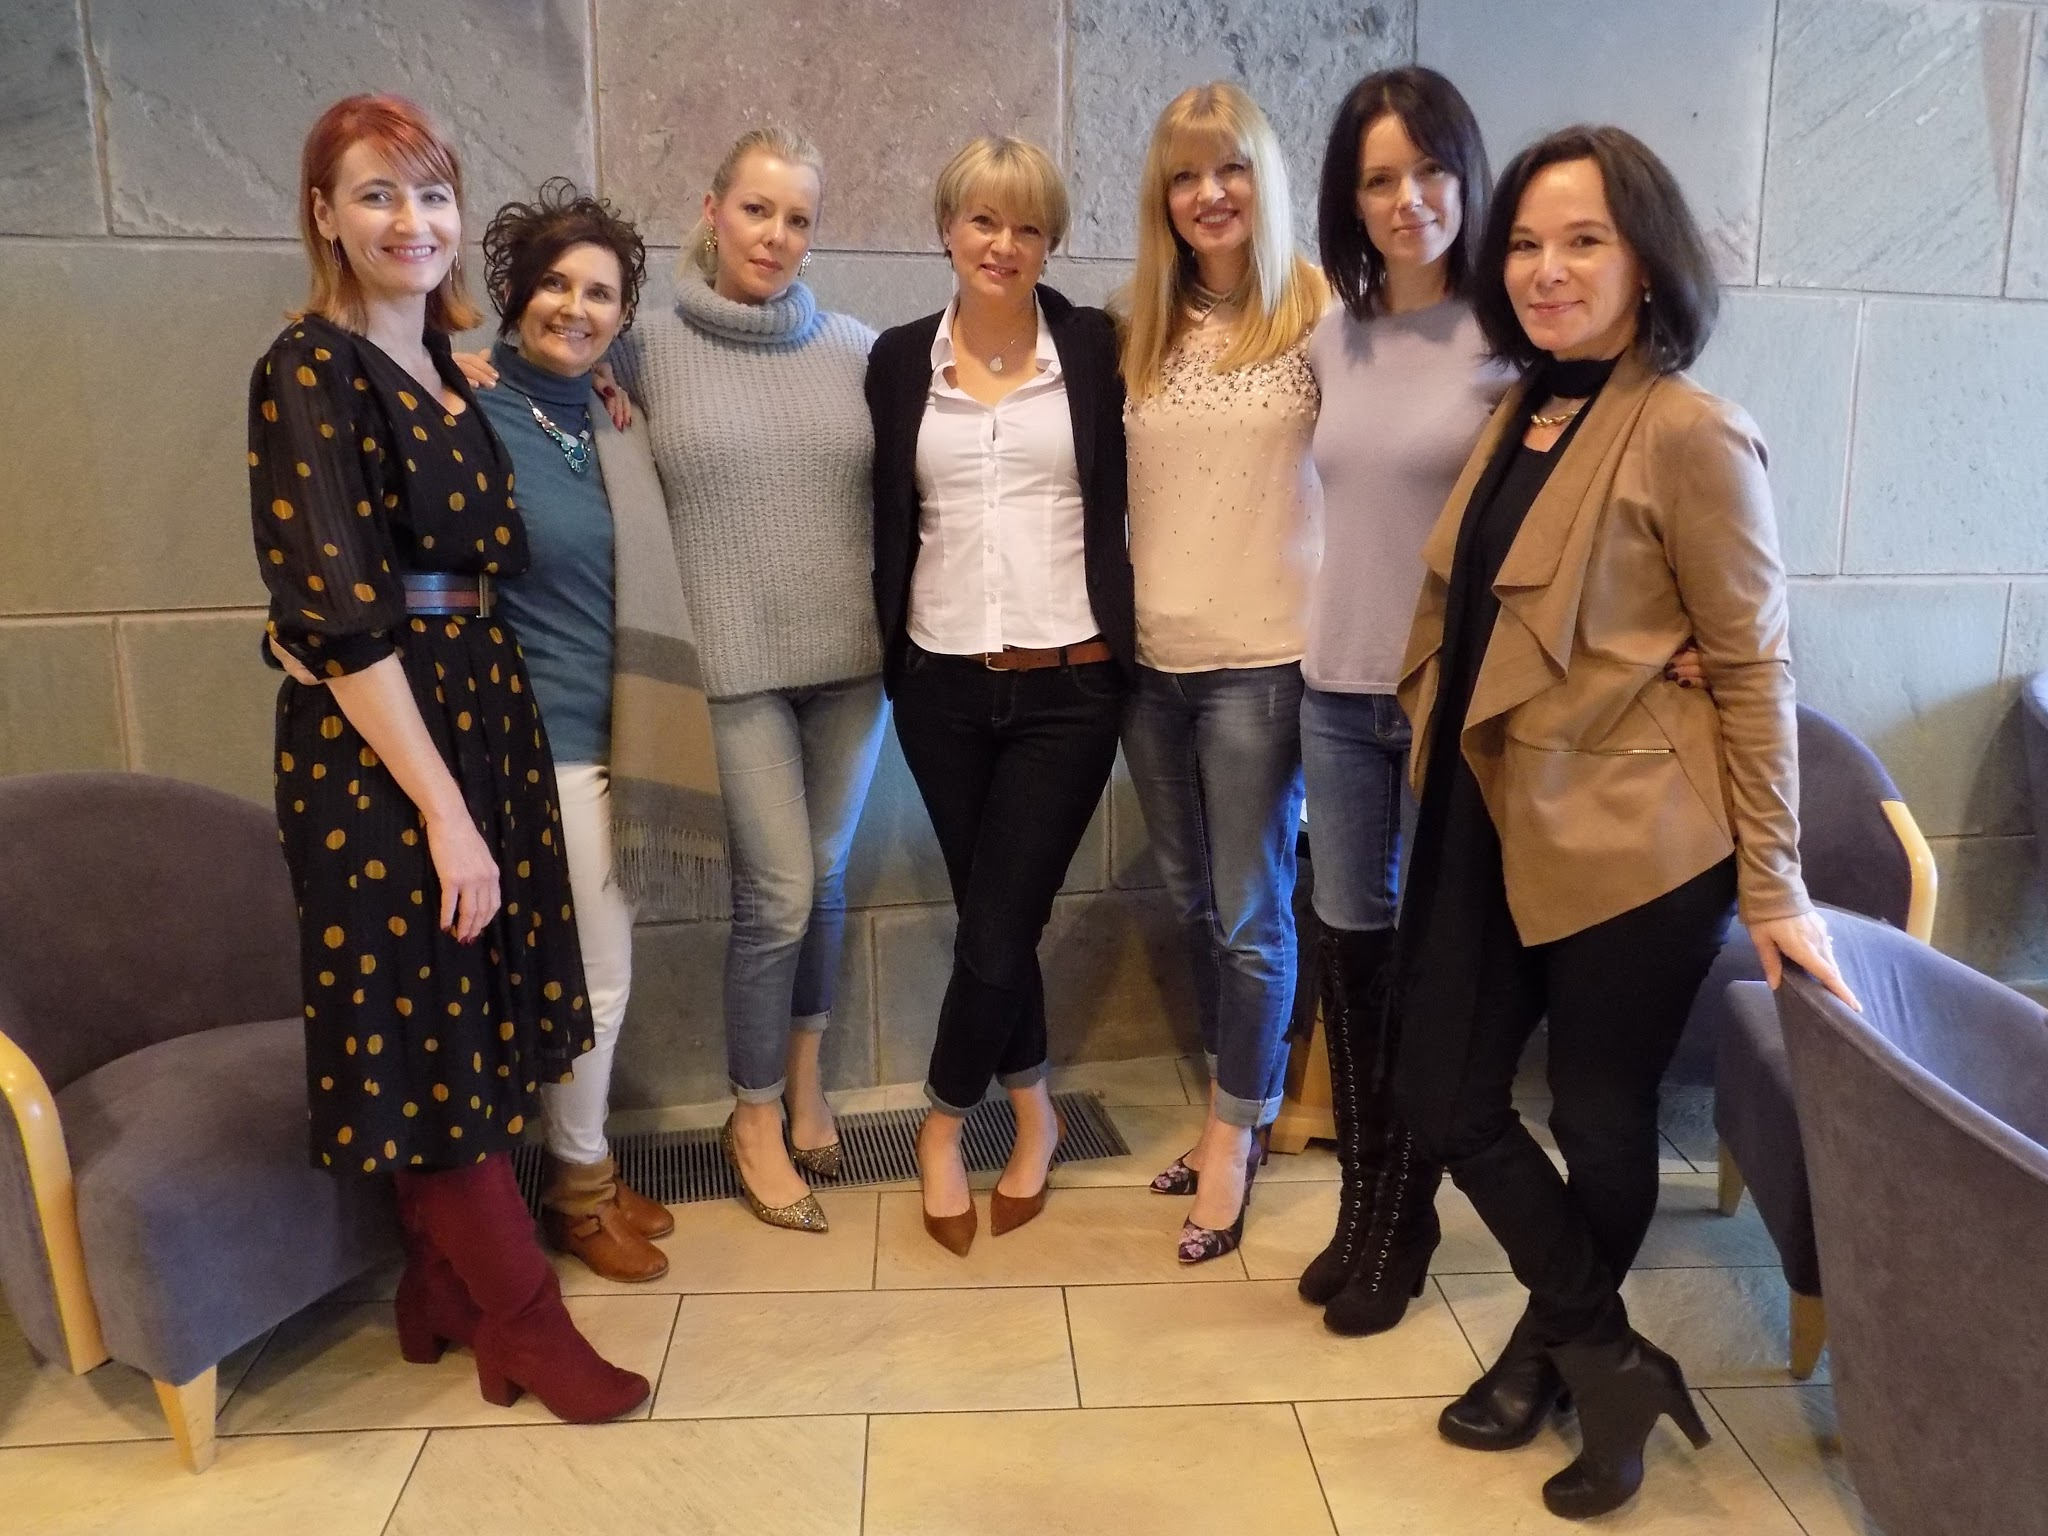 Over 40 bloggers at The Blognix retreat